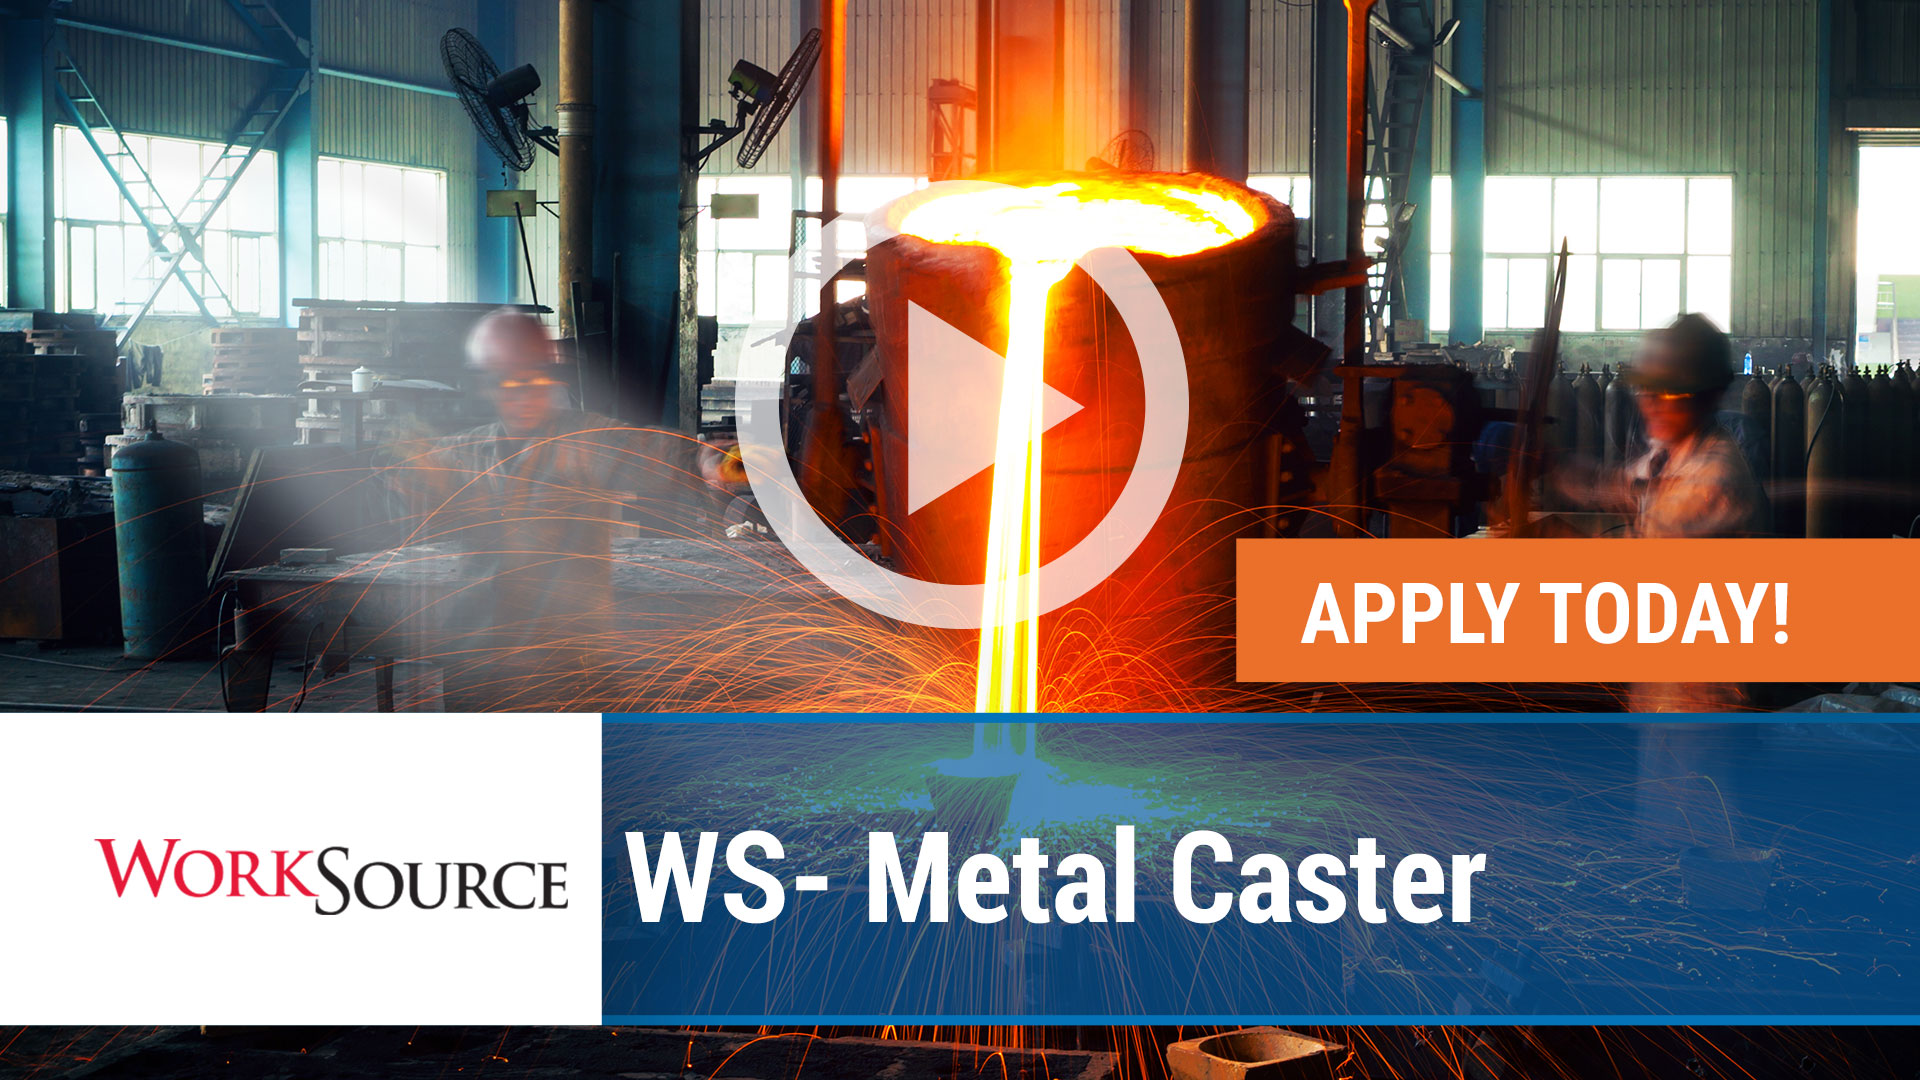 Watch our careers video for available job opening WS Metal Caster in Fayetteville,Arkansas. USA